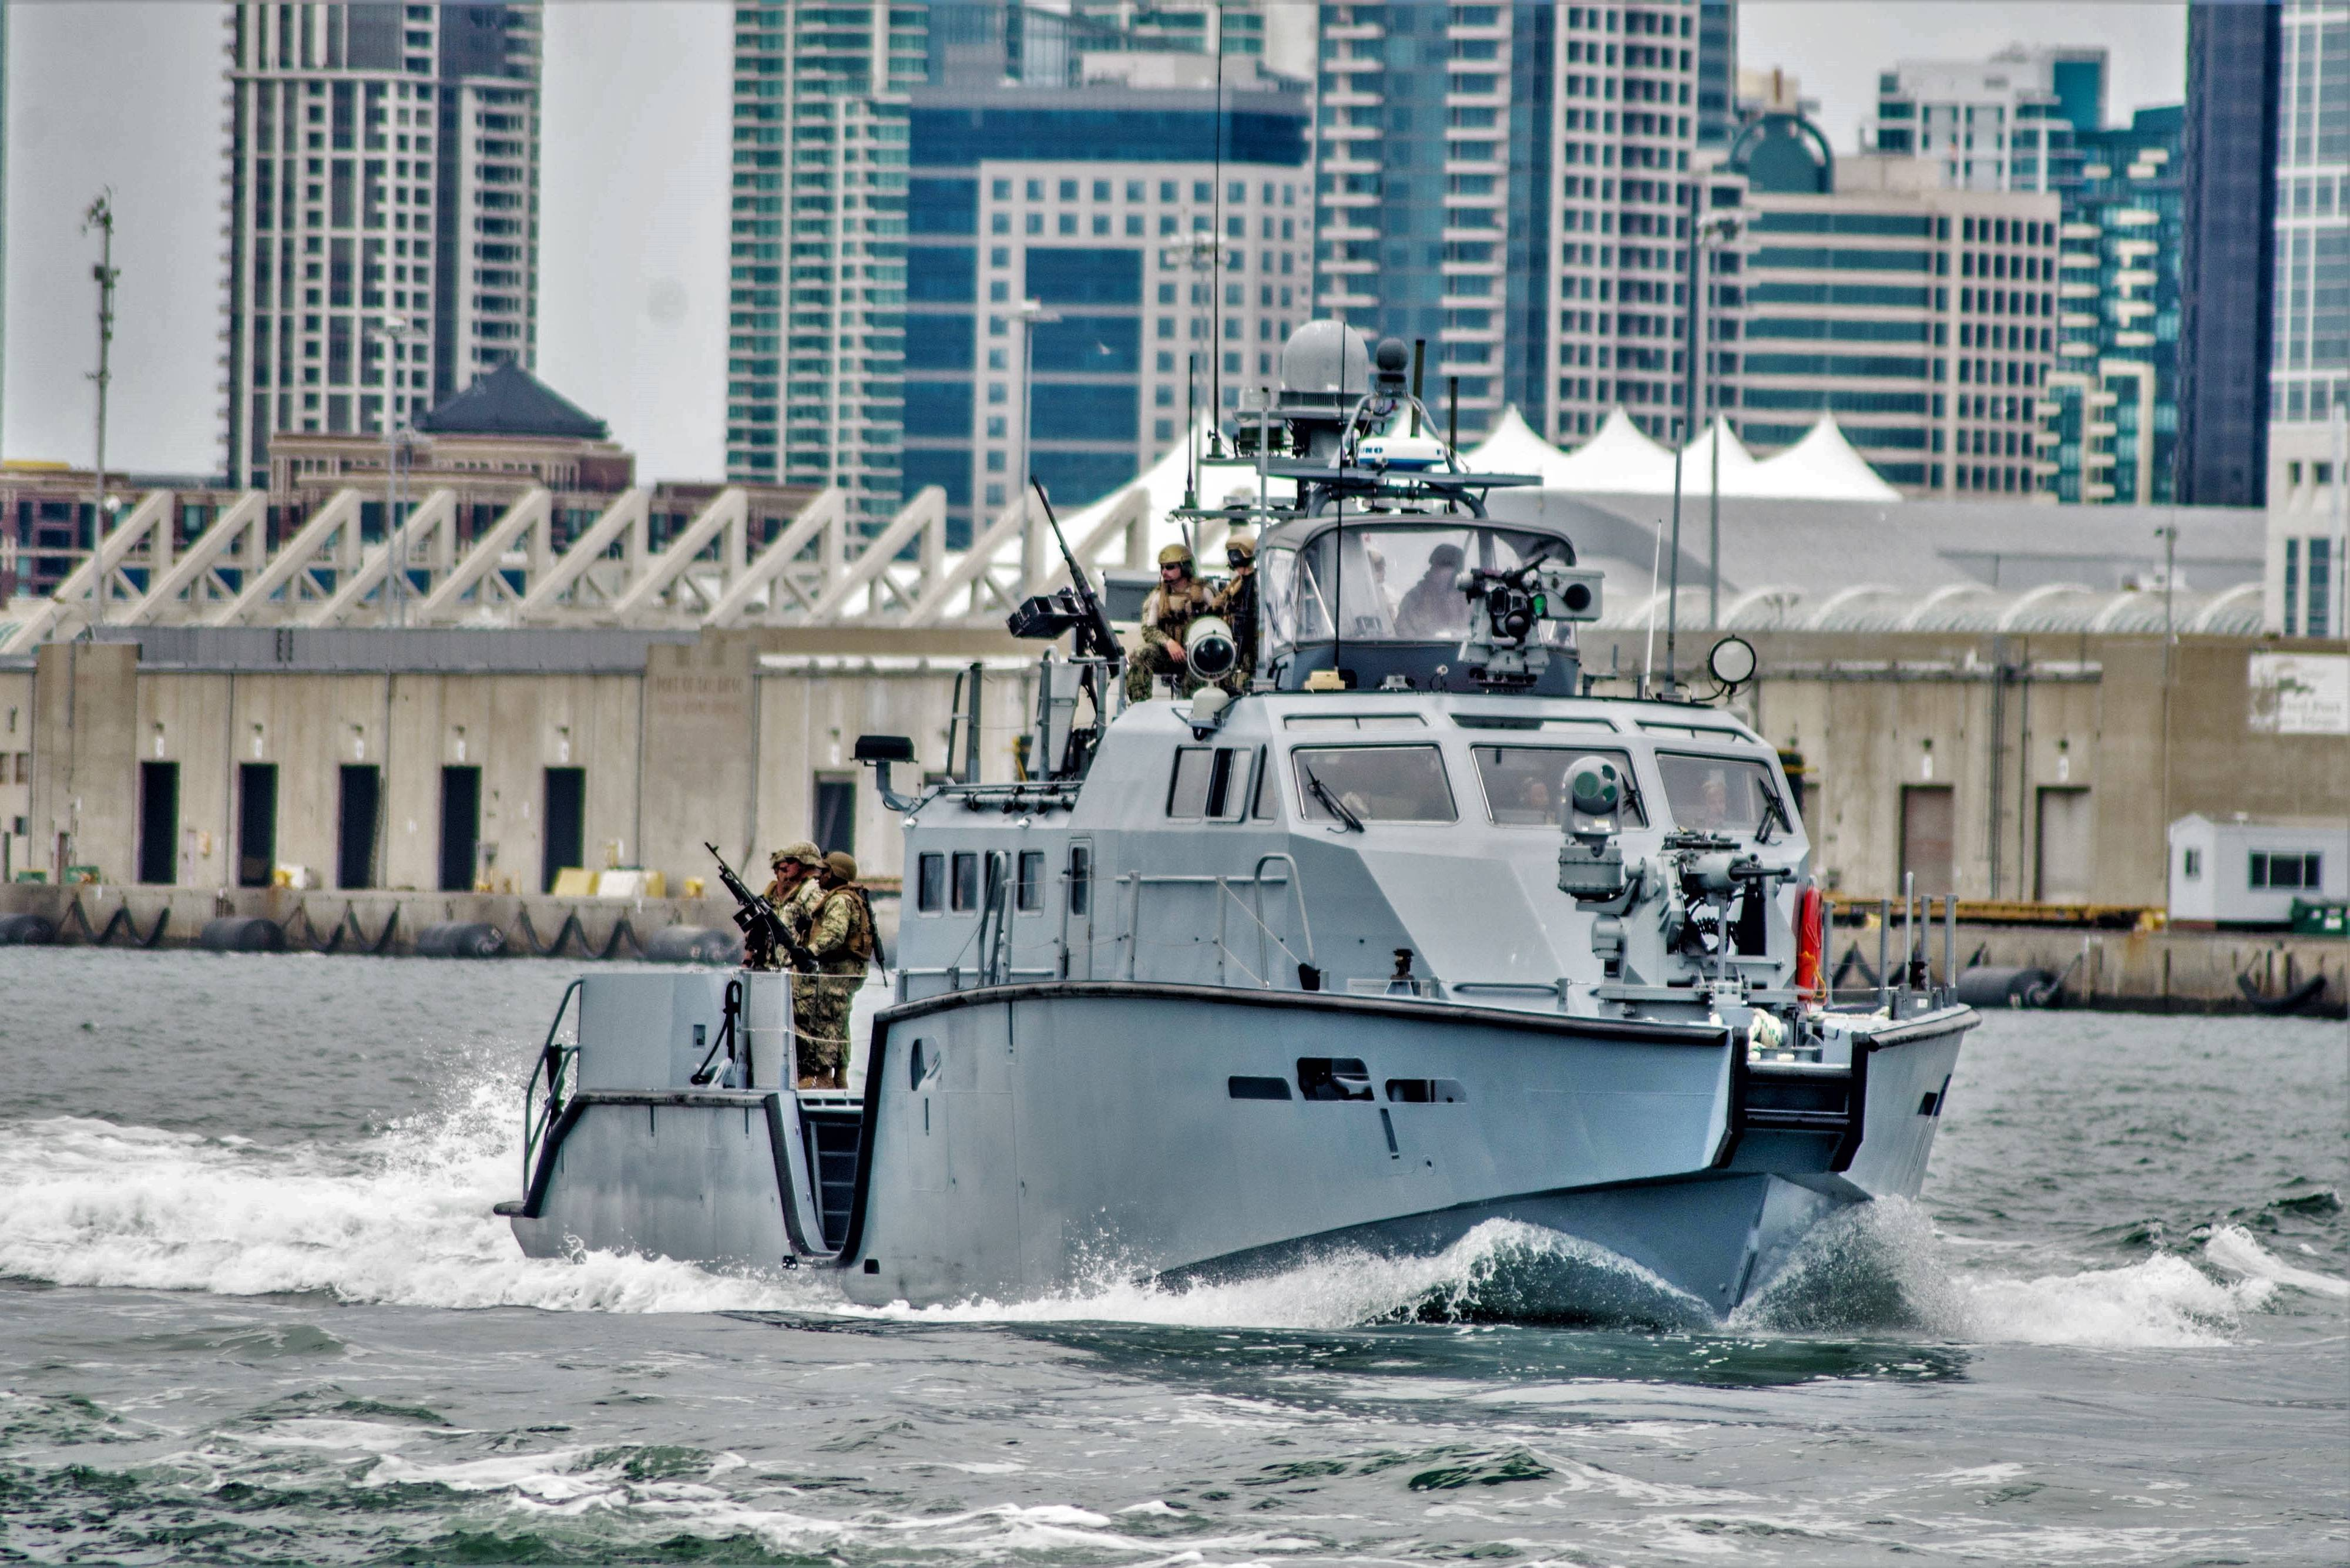 US Approves $600 Mln patrol boat deal with Ukraine